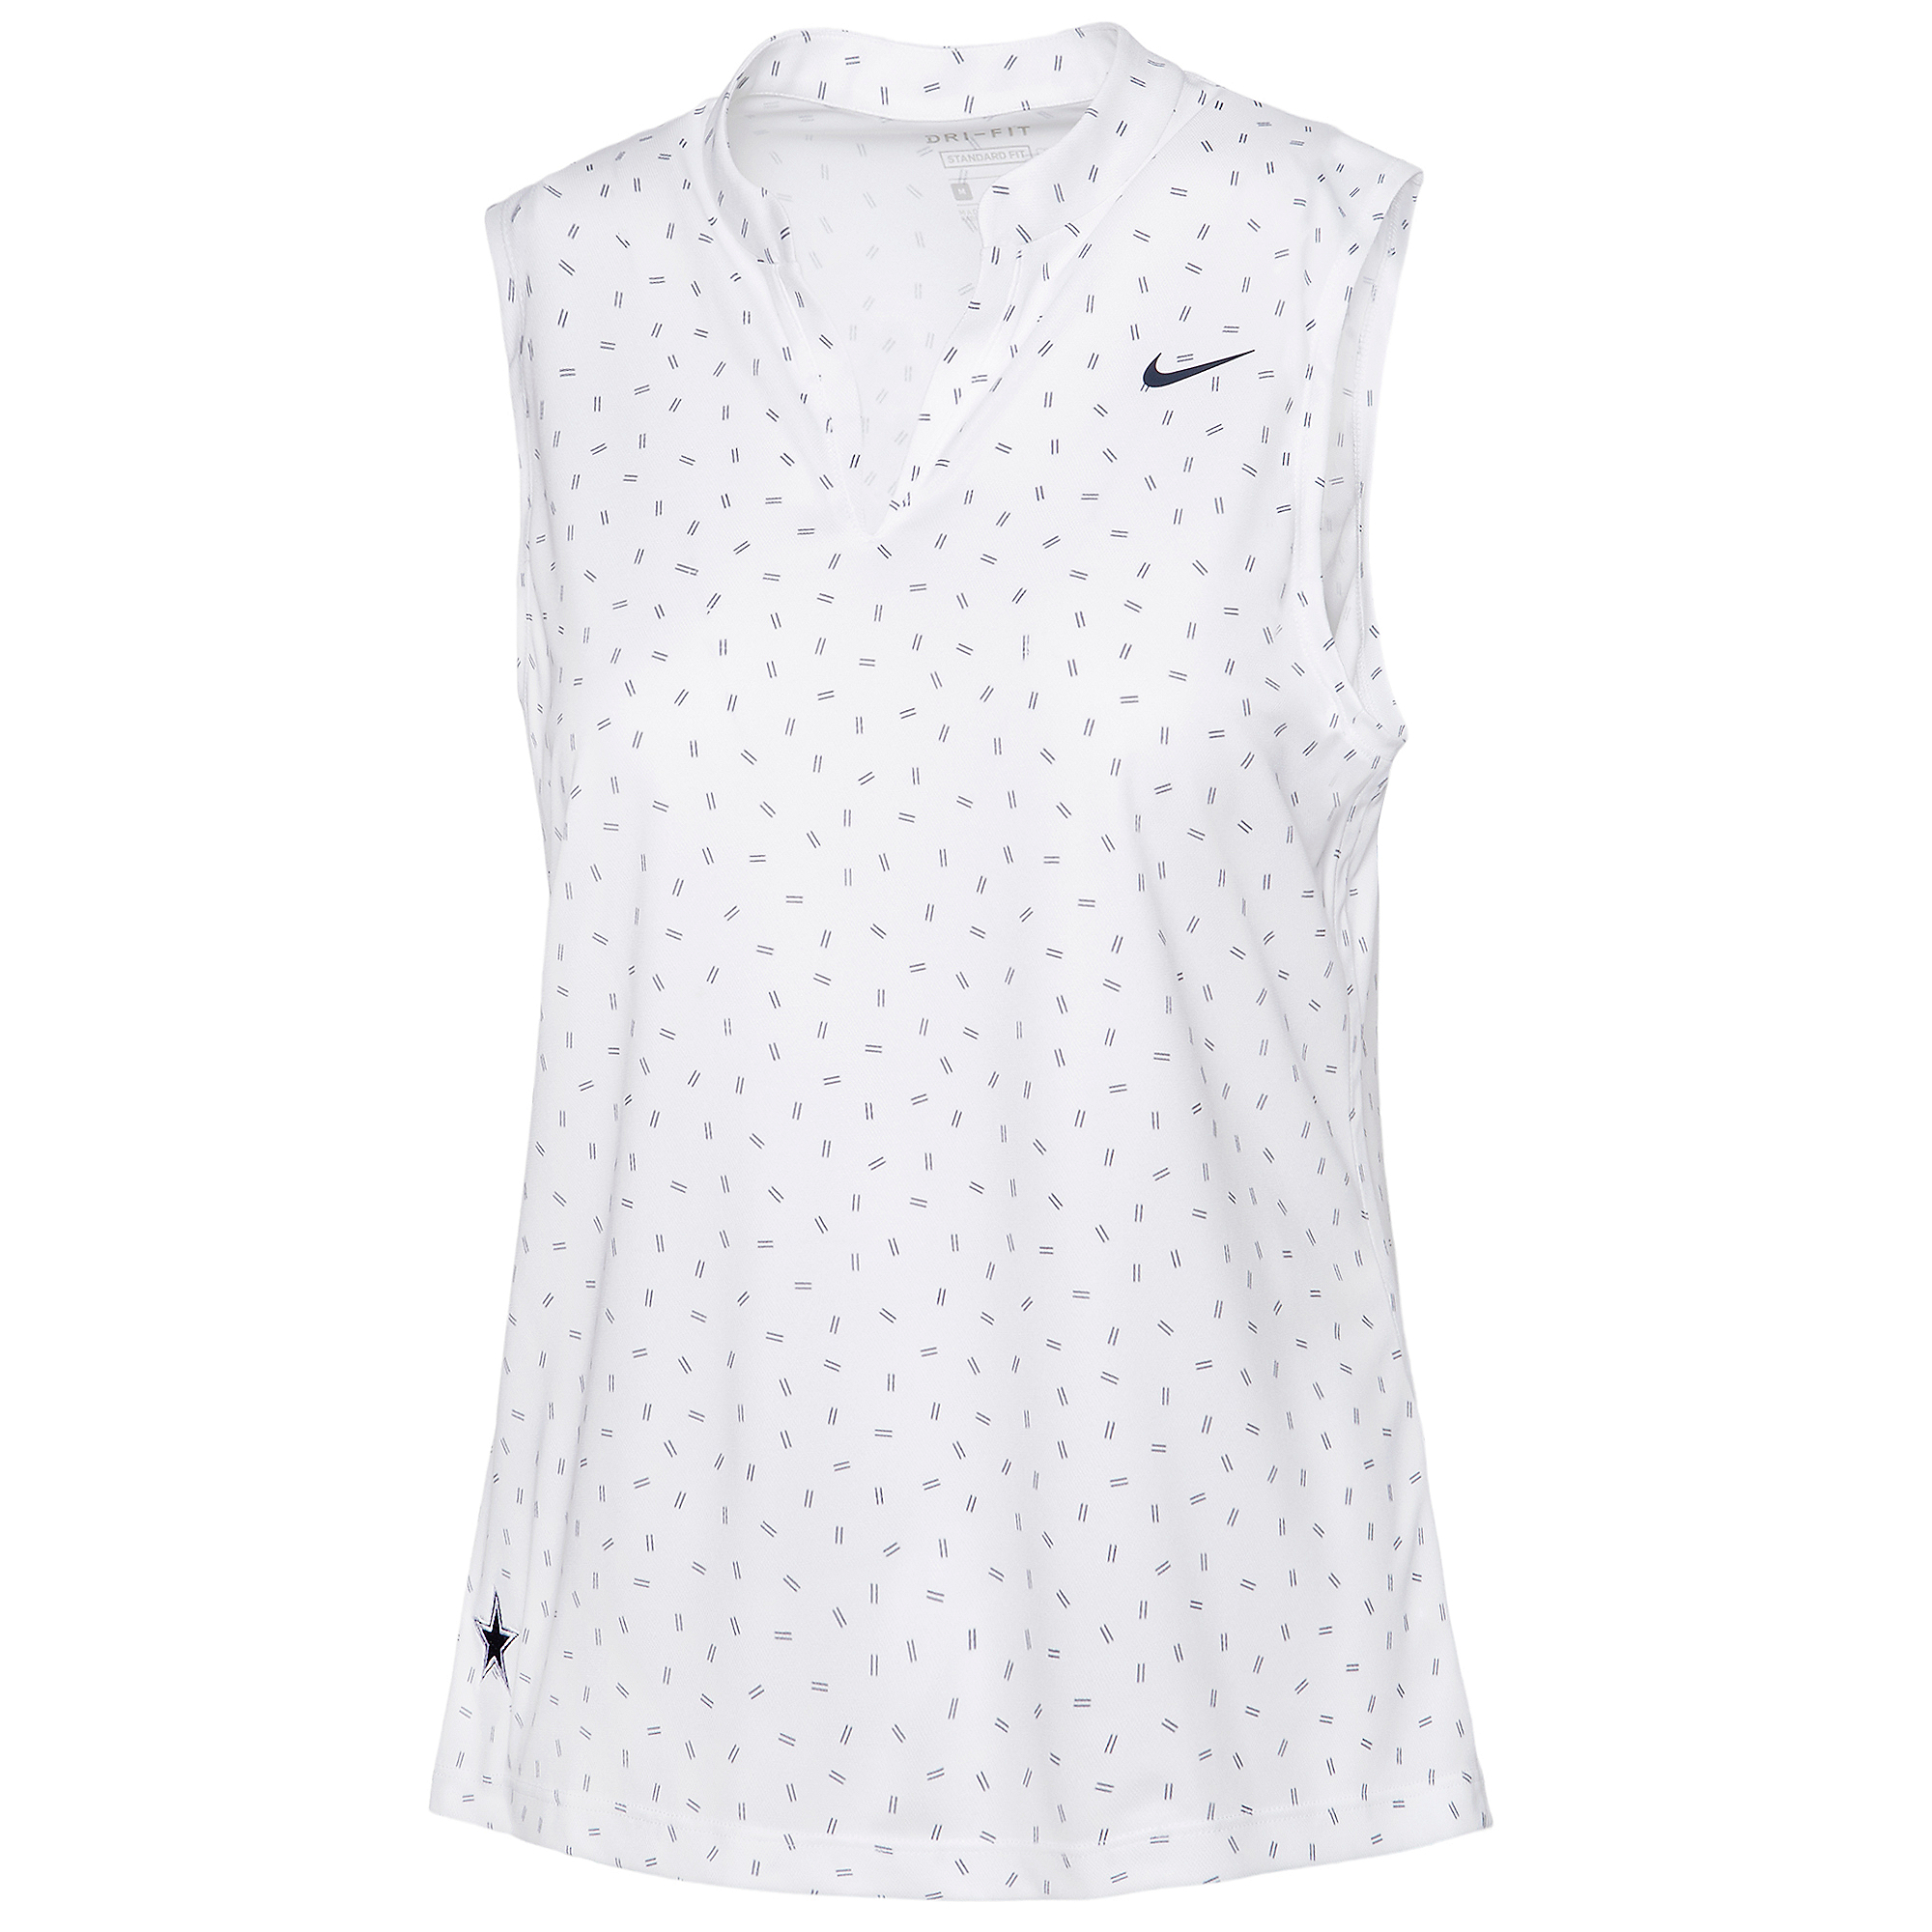 Dallas Cowboys Nike Dri-FIT Womens Victory Golf Polo Tank